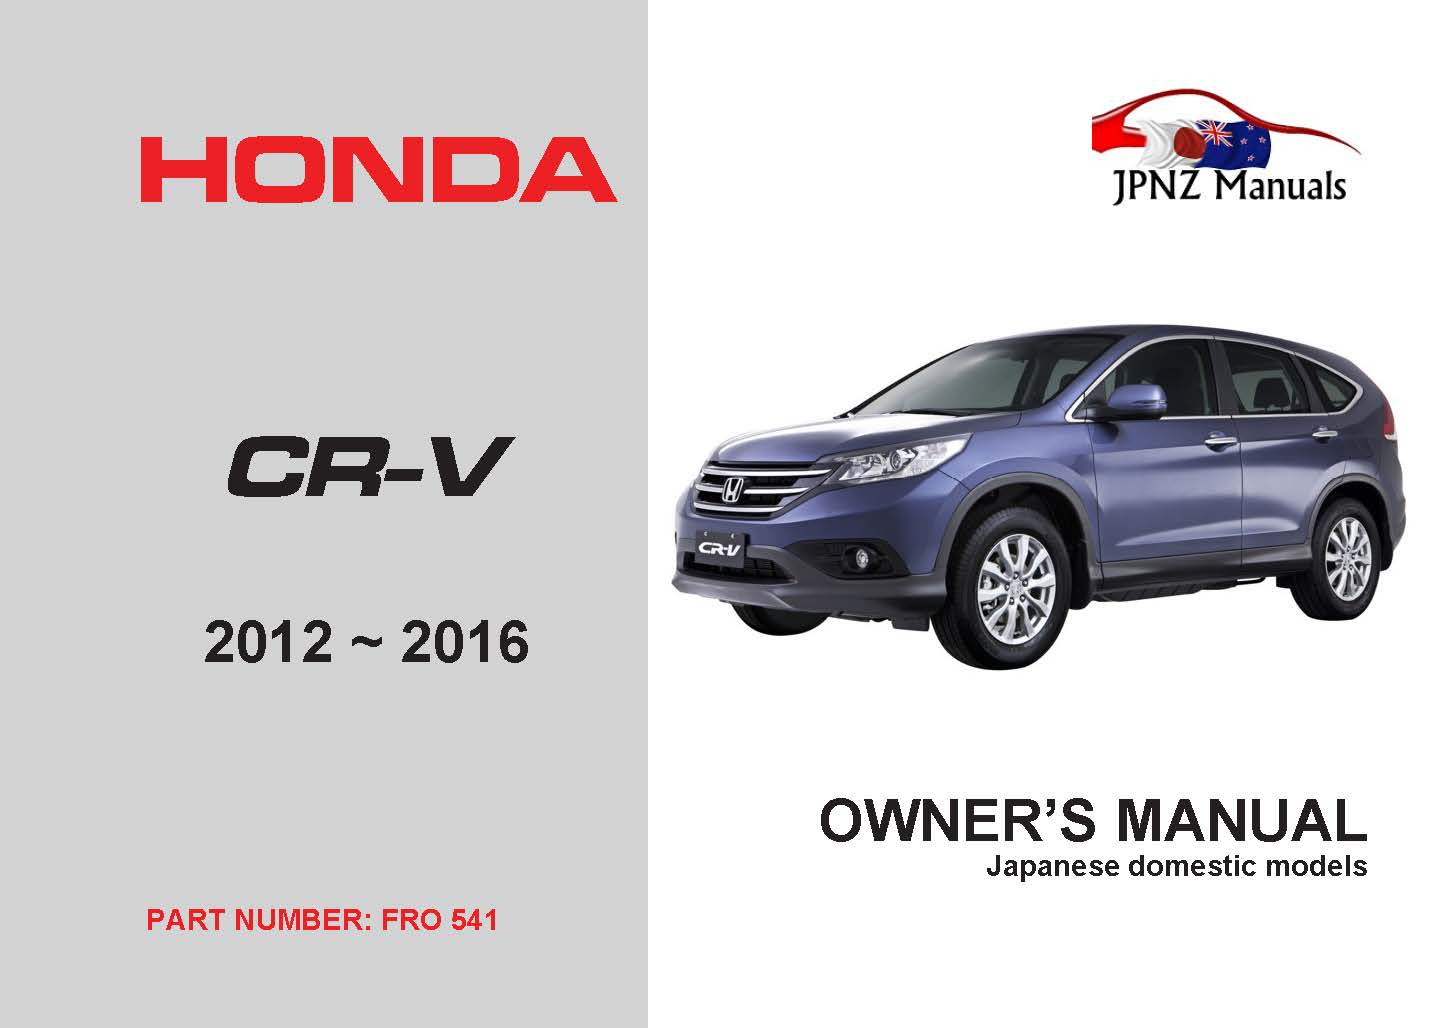 Honda – CR-V CRV Car Owners Manual 2012-2016